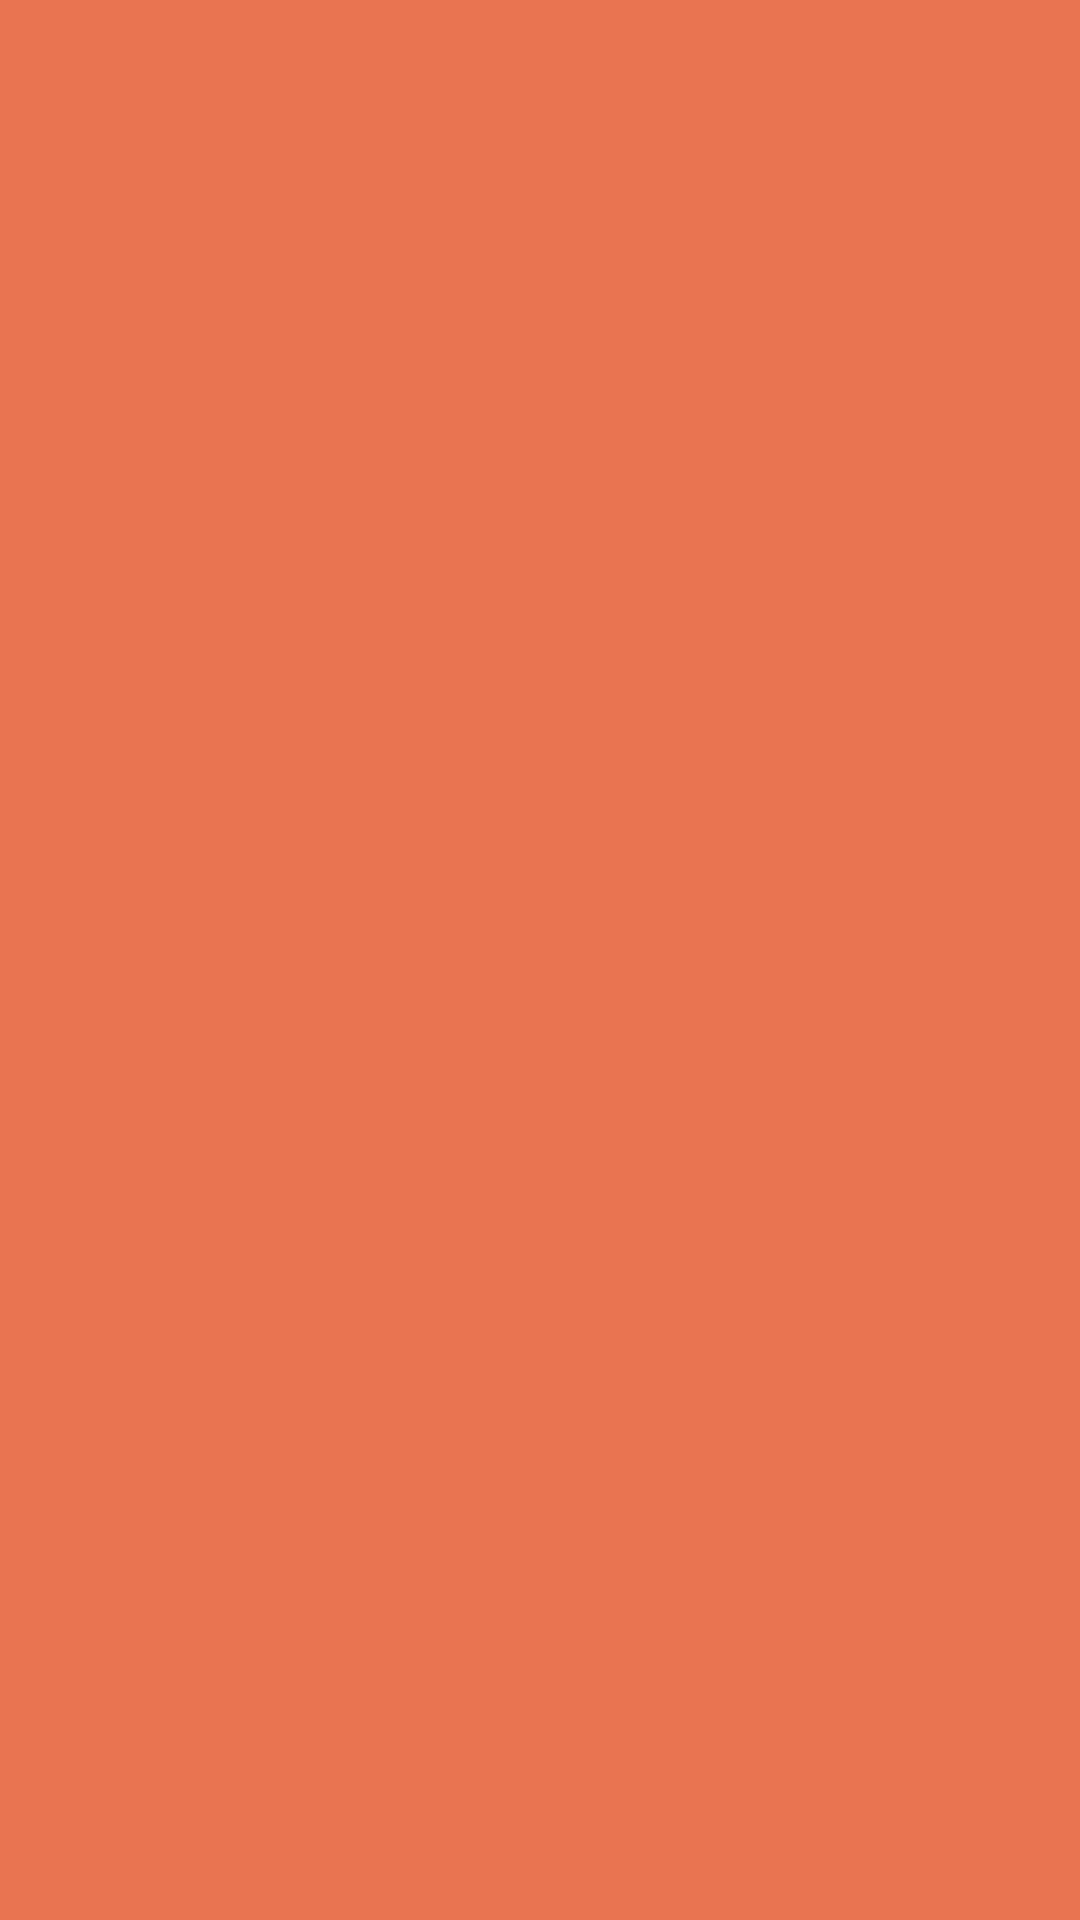 1080x1920 Burnt Sienna Solid Color Background